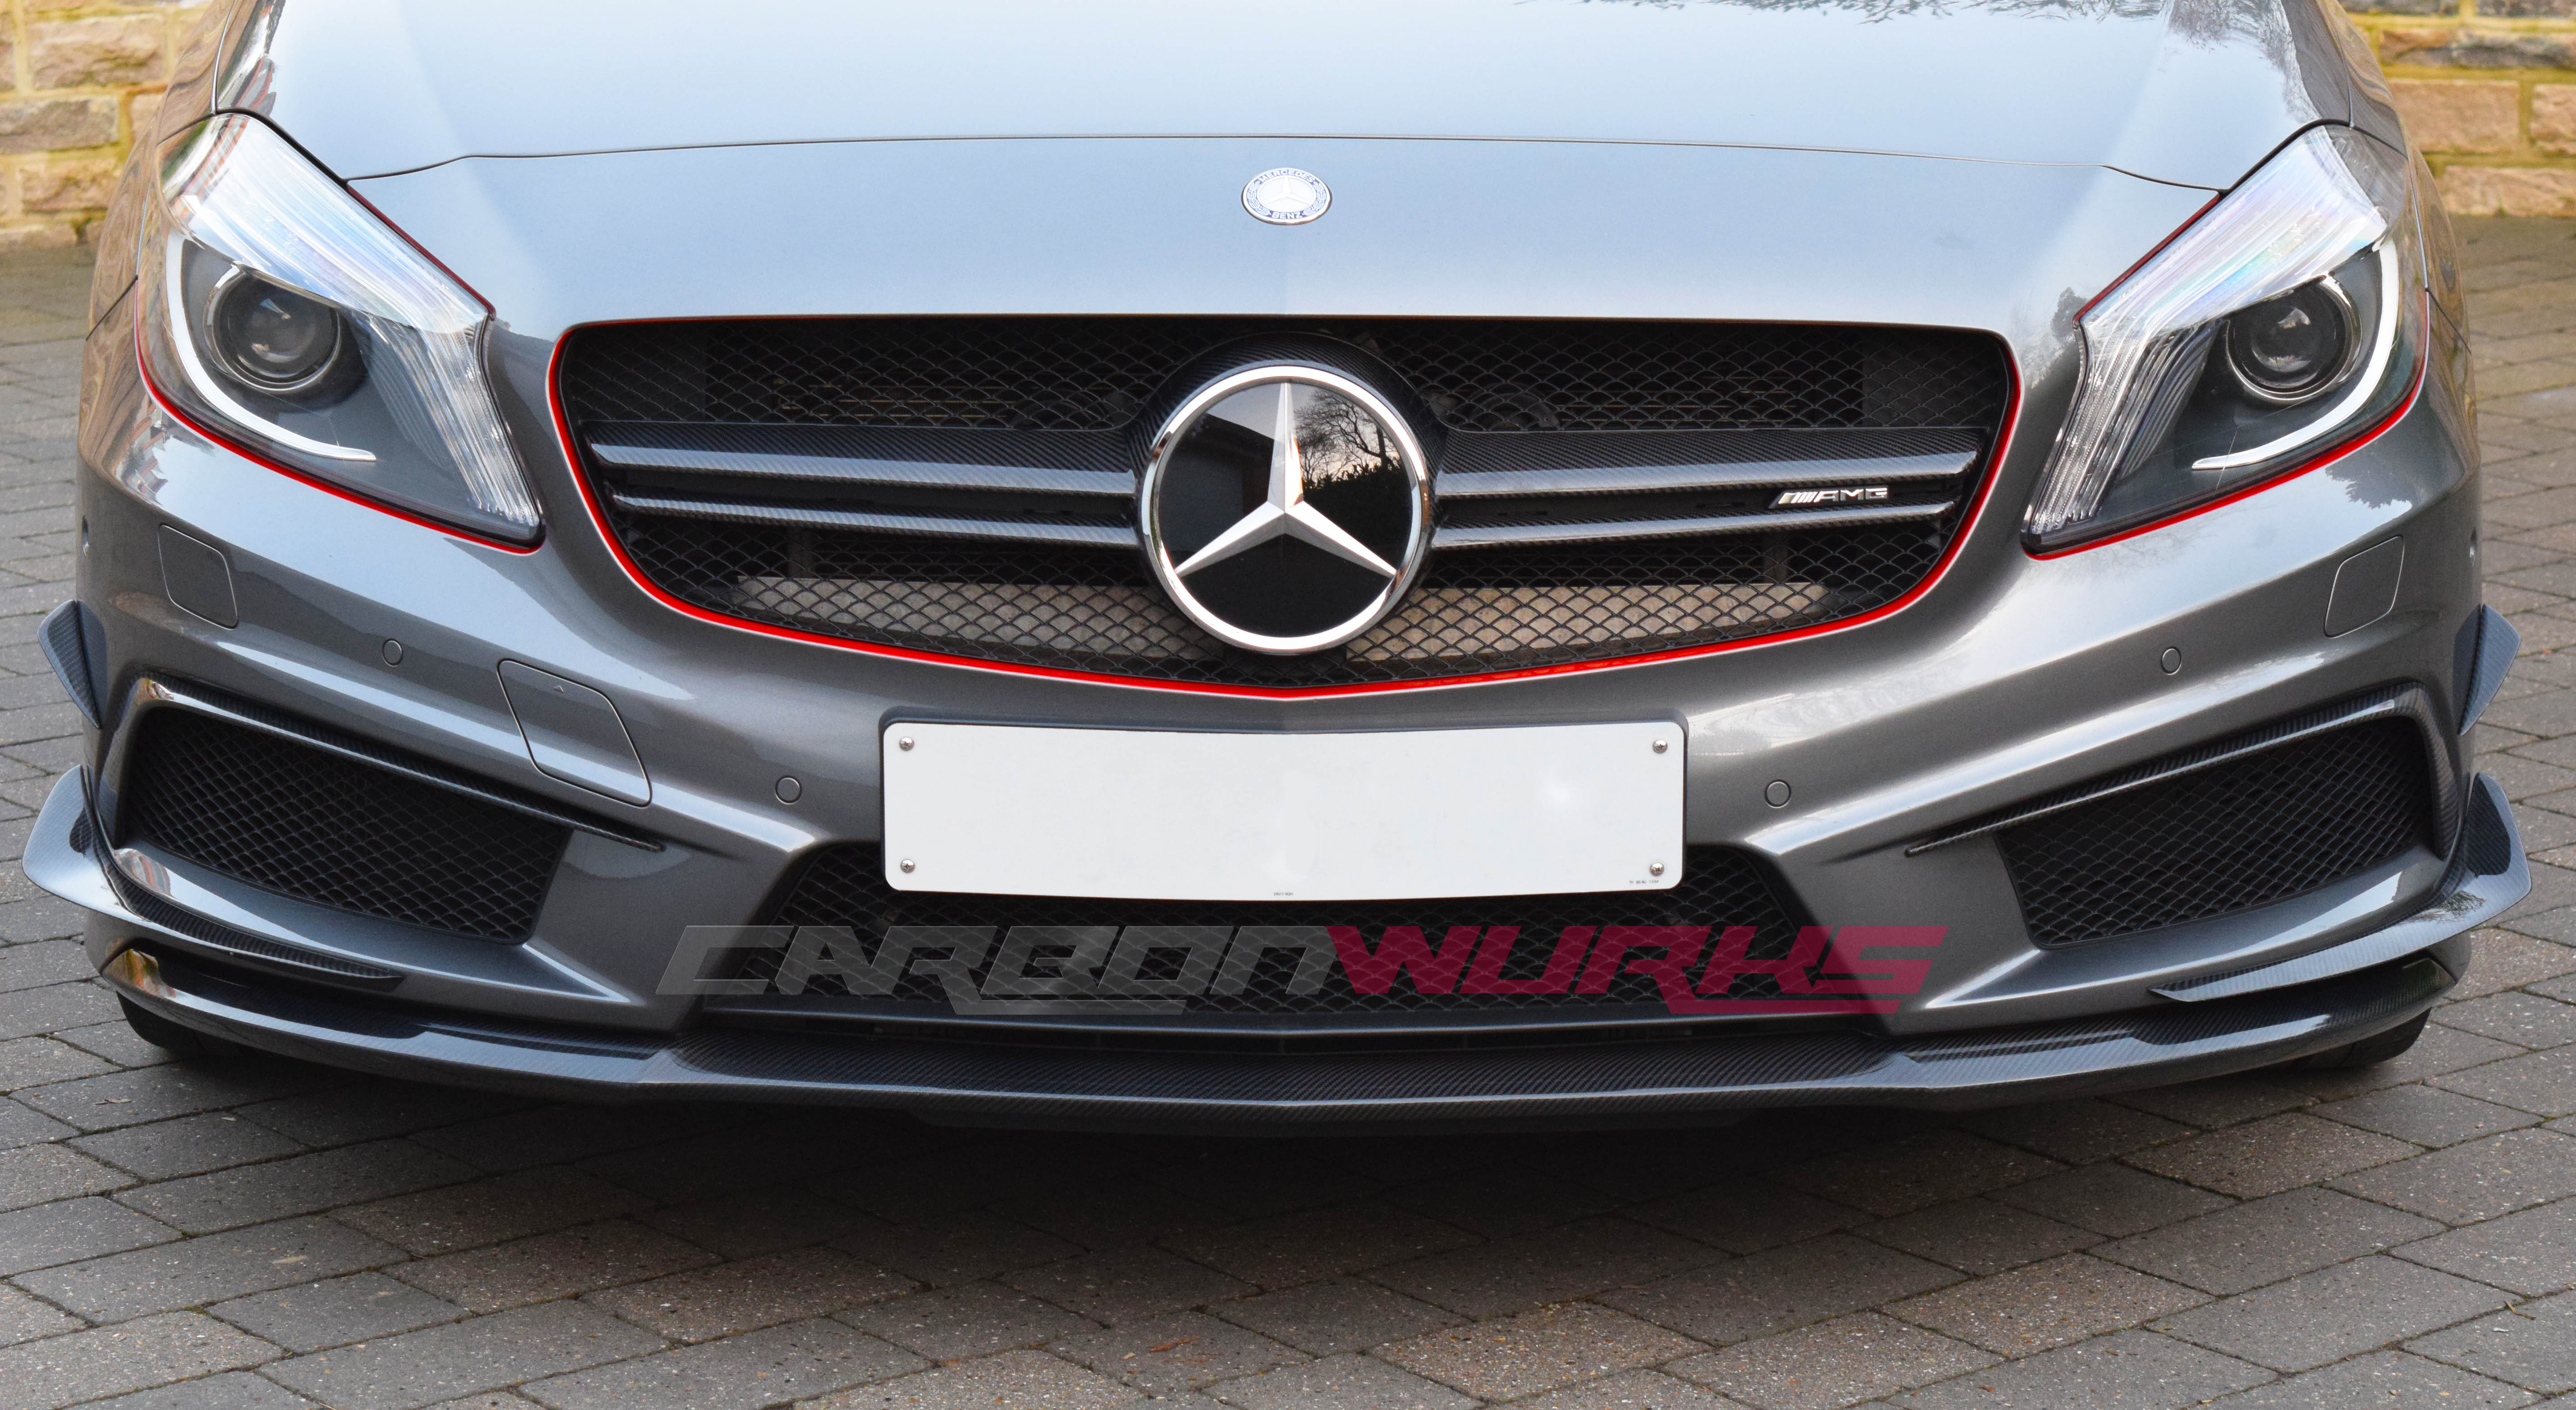 Carbonwurks custom carbon fibremercedes a45 amg carbon for Mercedes benz shop